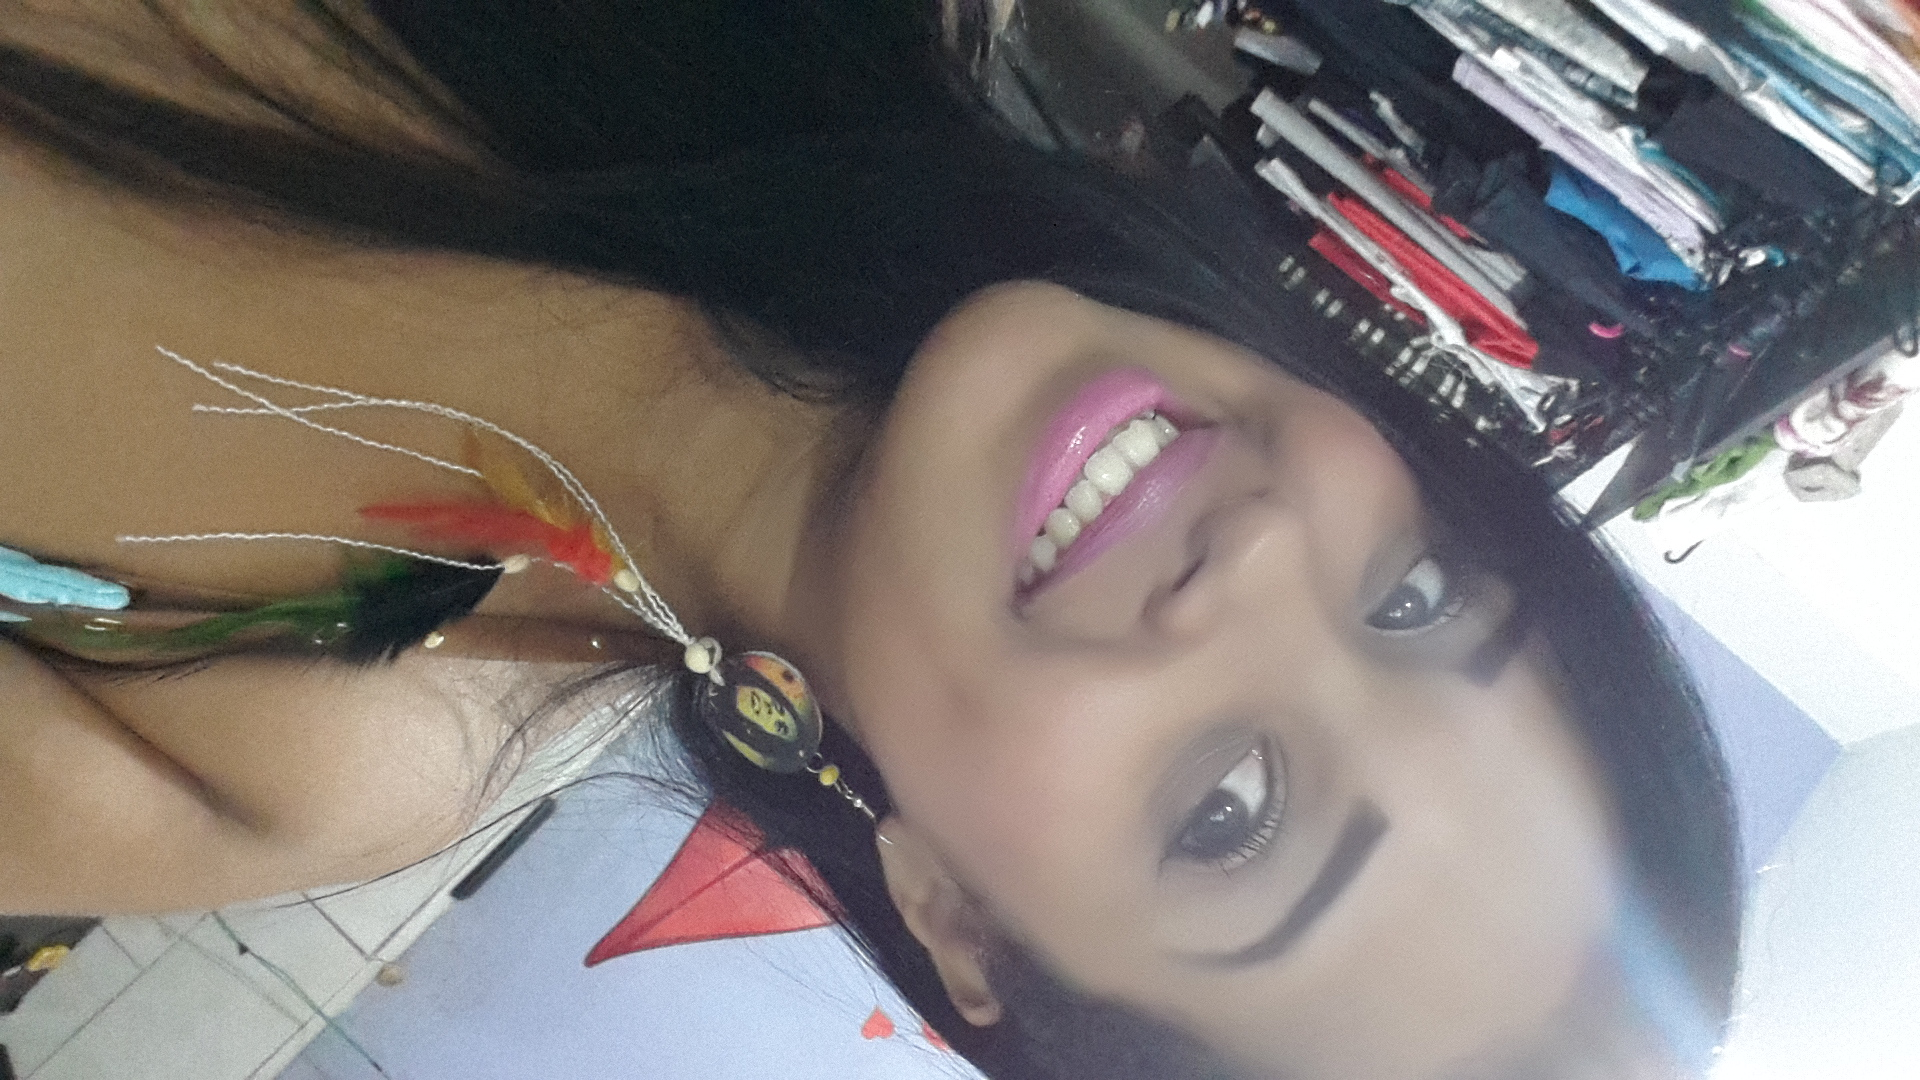 luana big and beautiful singles Chubby bunnie is a bbw dating site with online plus size personals for bbw singles, here we have big beautiful woman (chubby bunnies),.